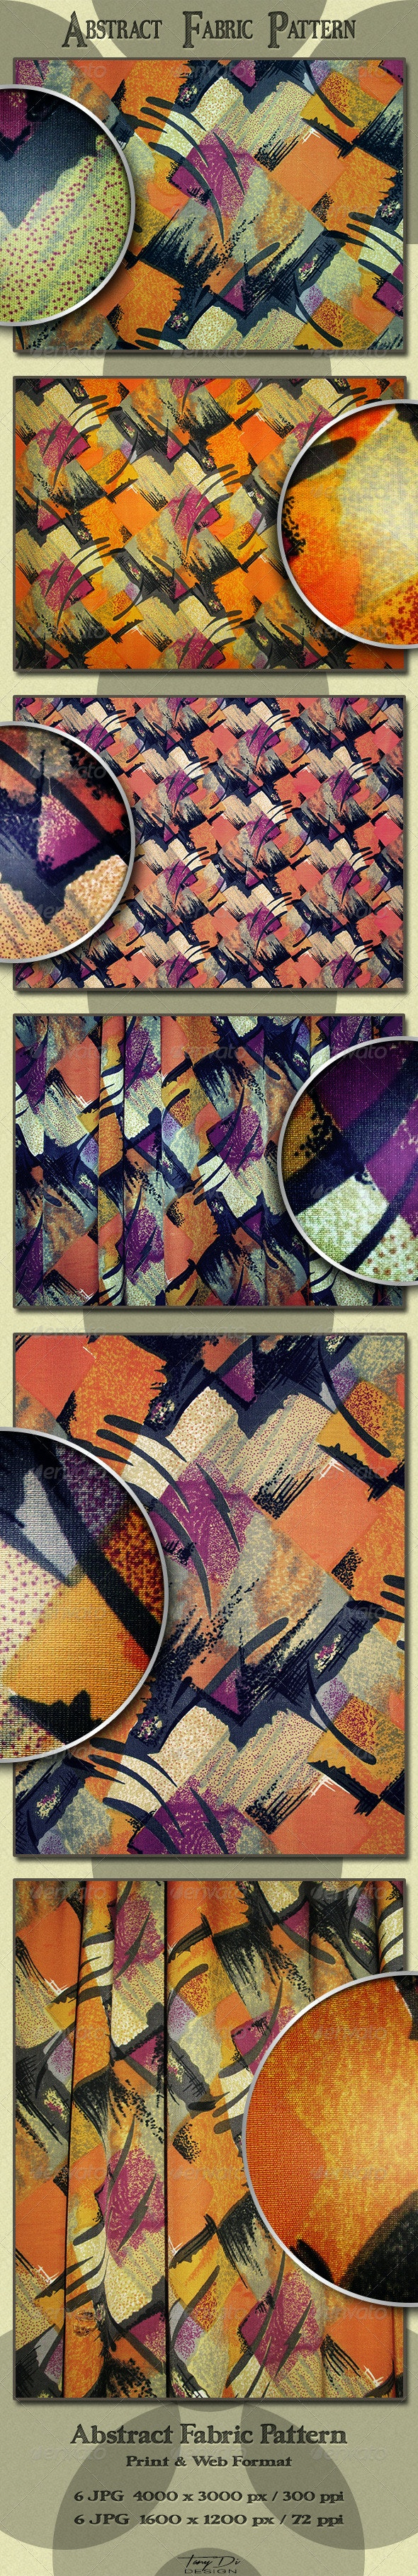 Abstract Fabric Pattern - Fabric Textures